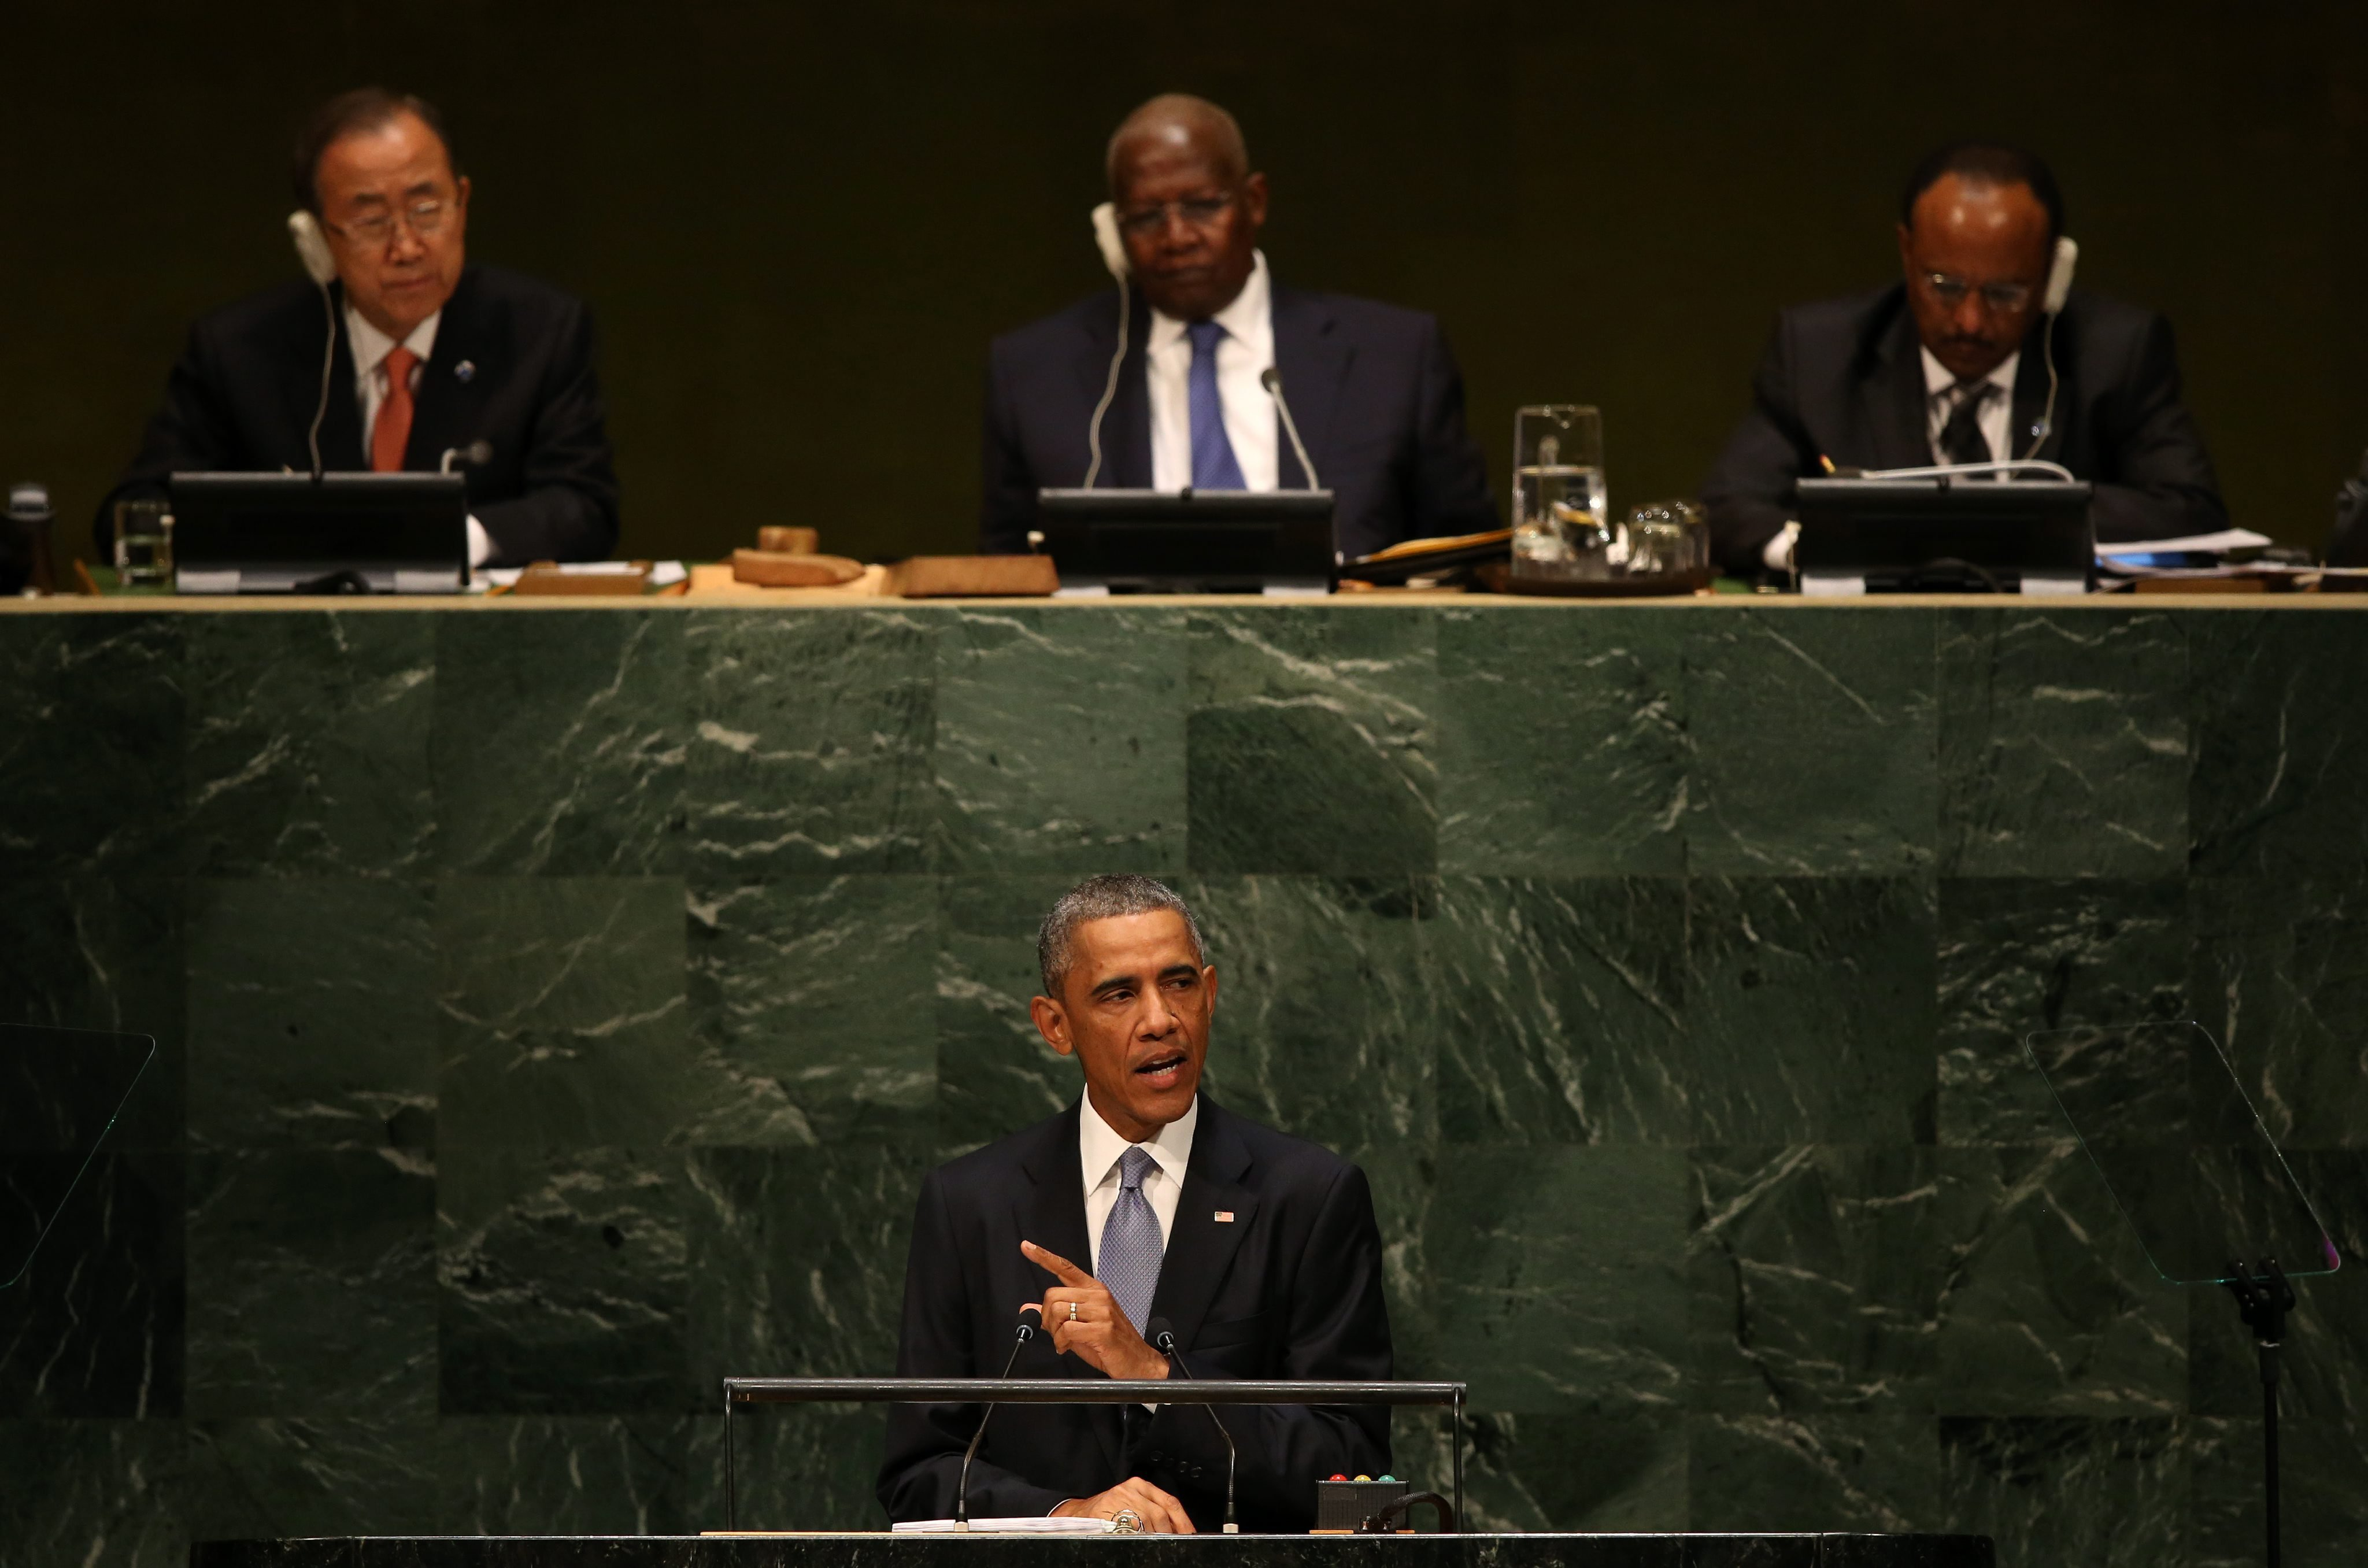 President Barack Obama speaks during the general debate of the 69th session of the United Nations General Assembly at the United Nations headquarters in New York on Sept. 24, 2014.